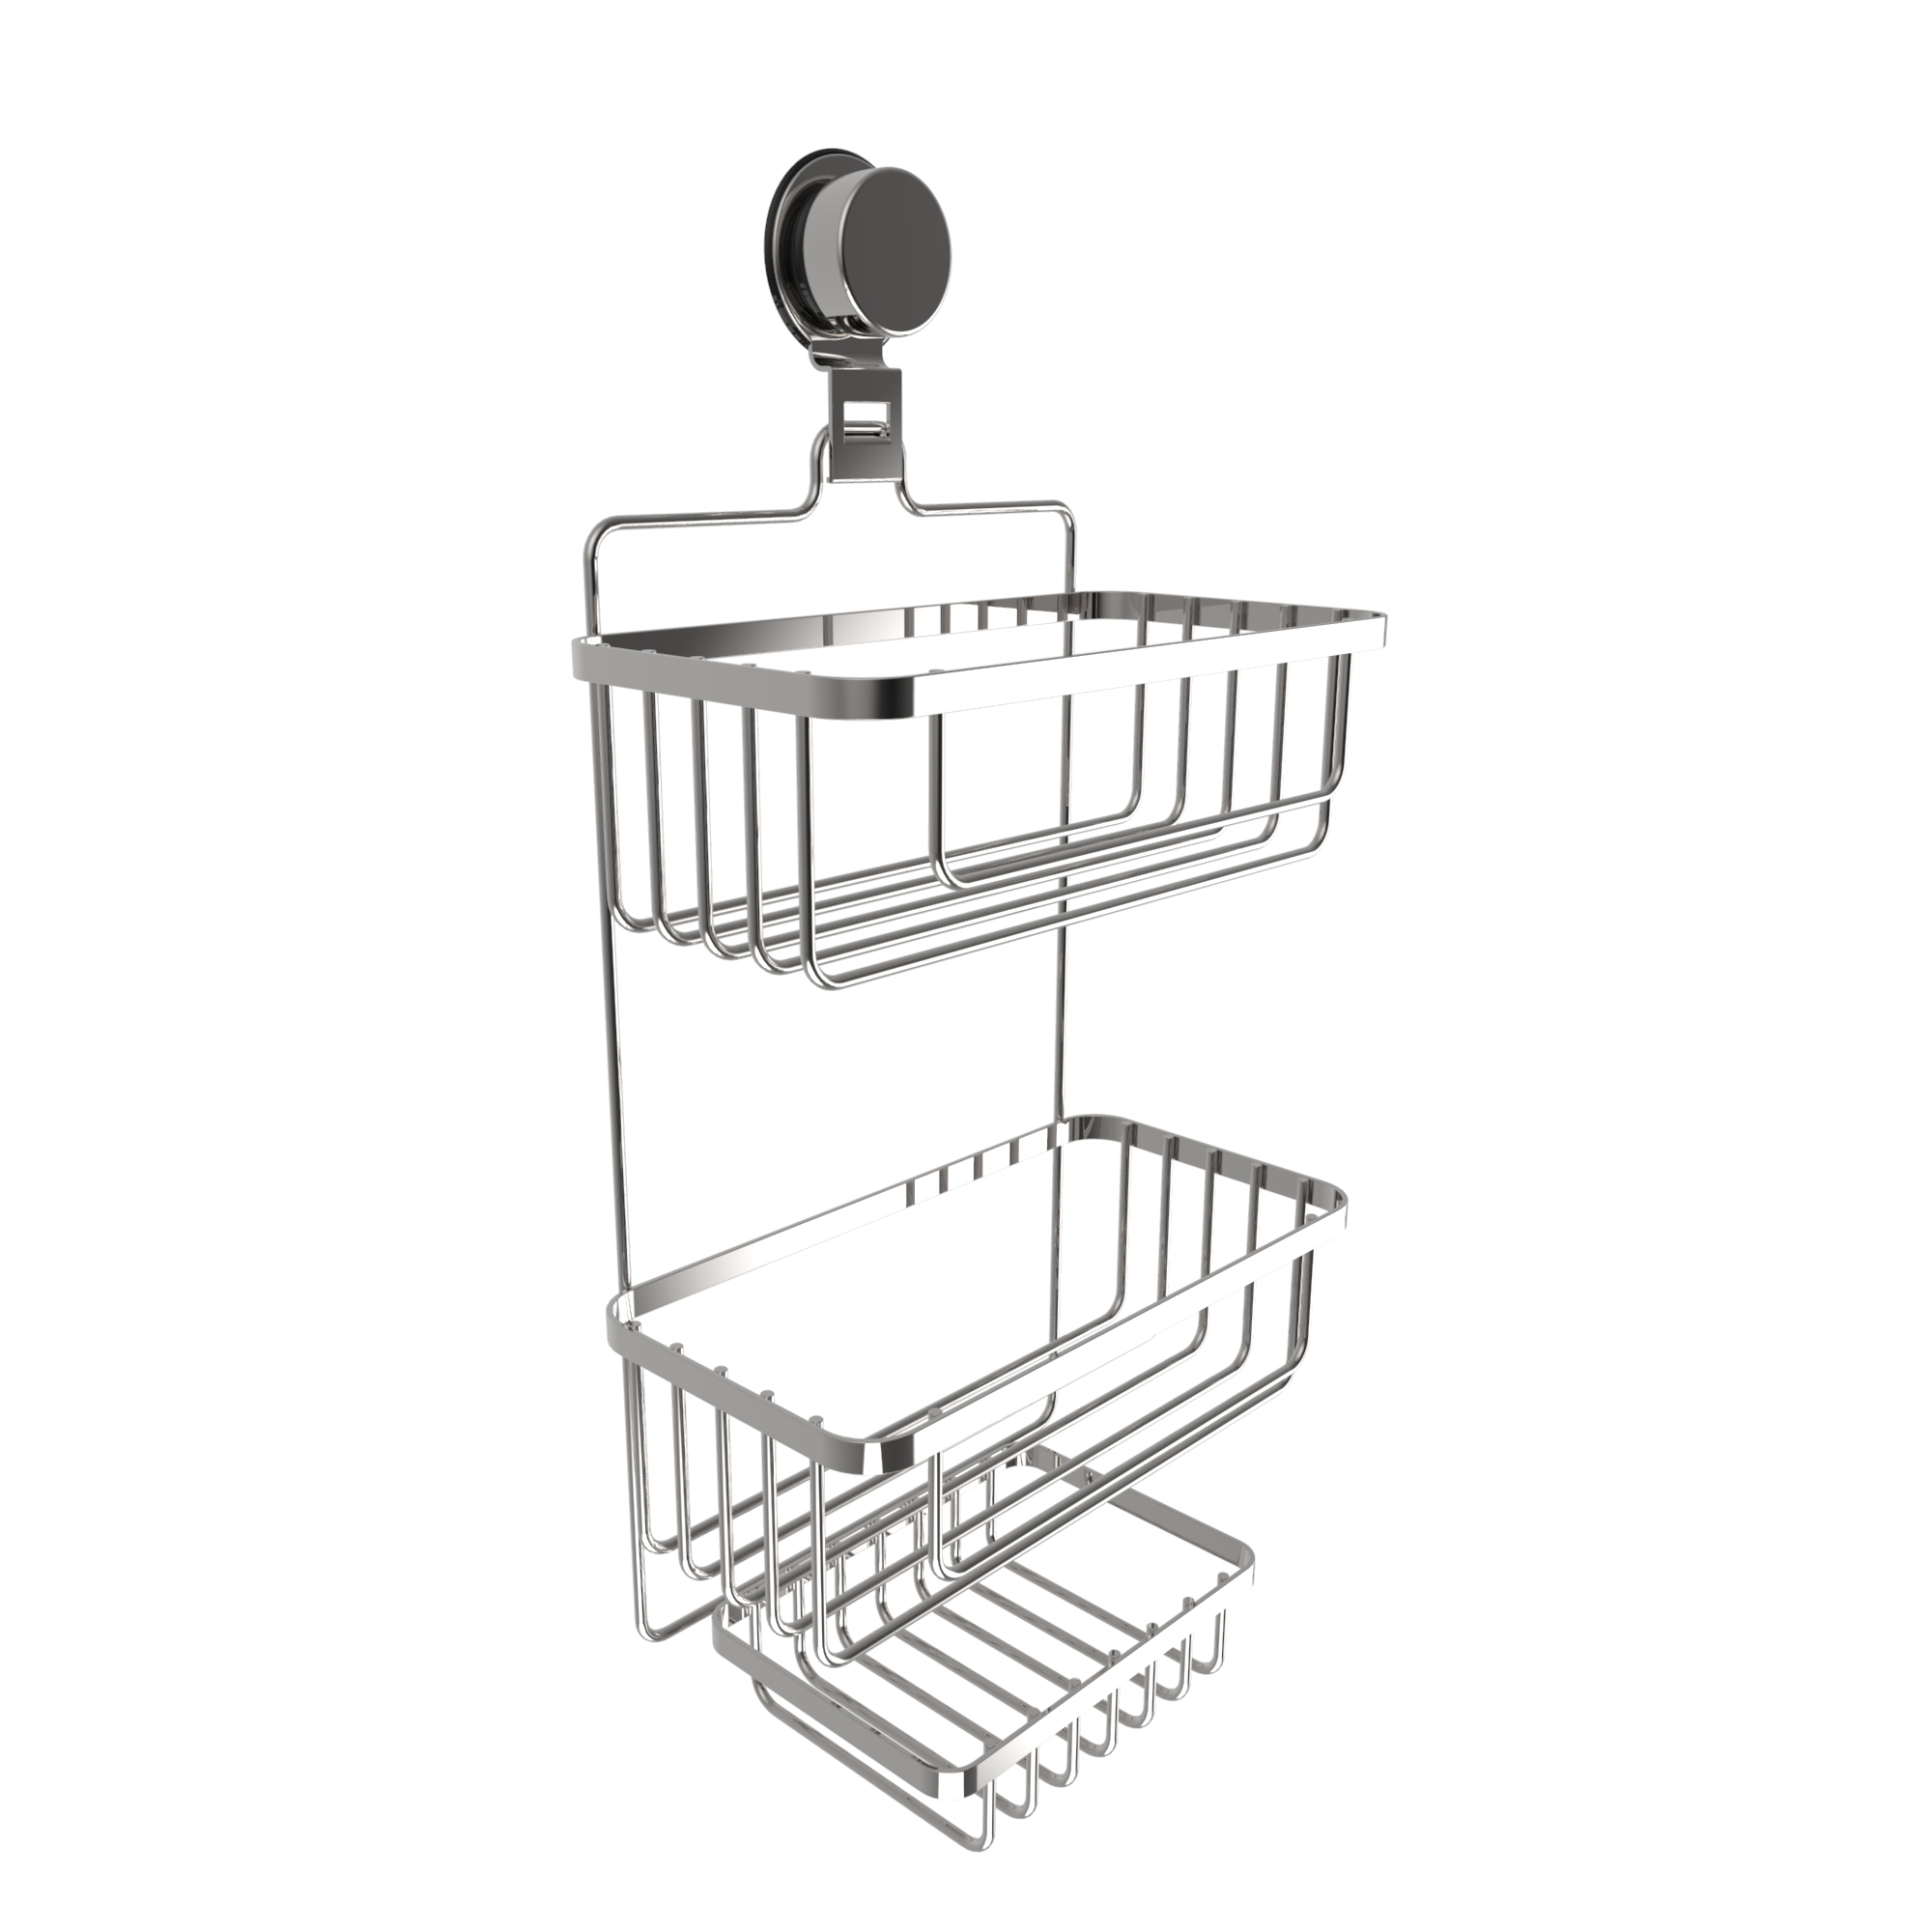 somerset home 3 tier wall mounted shower caddy